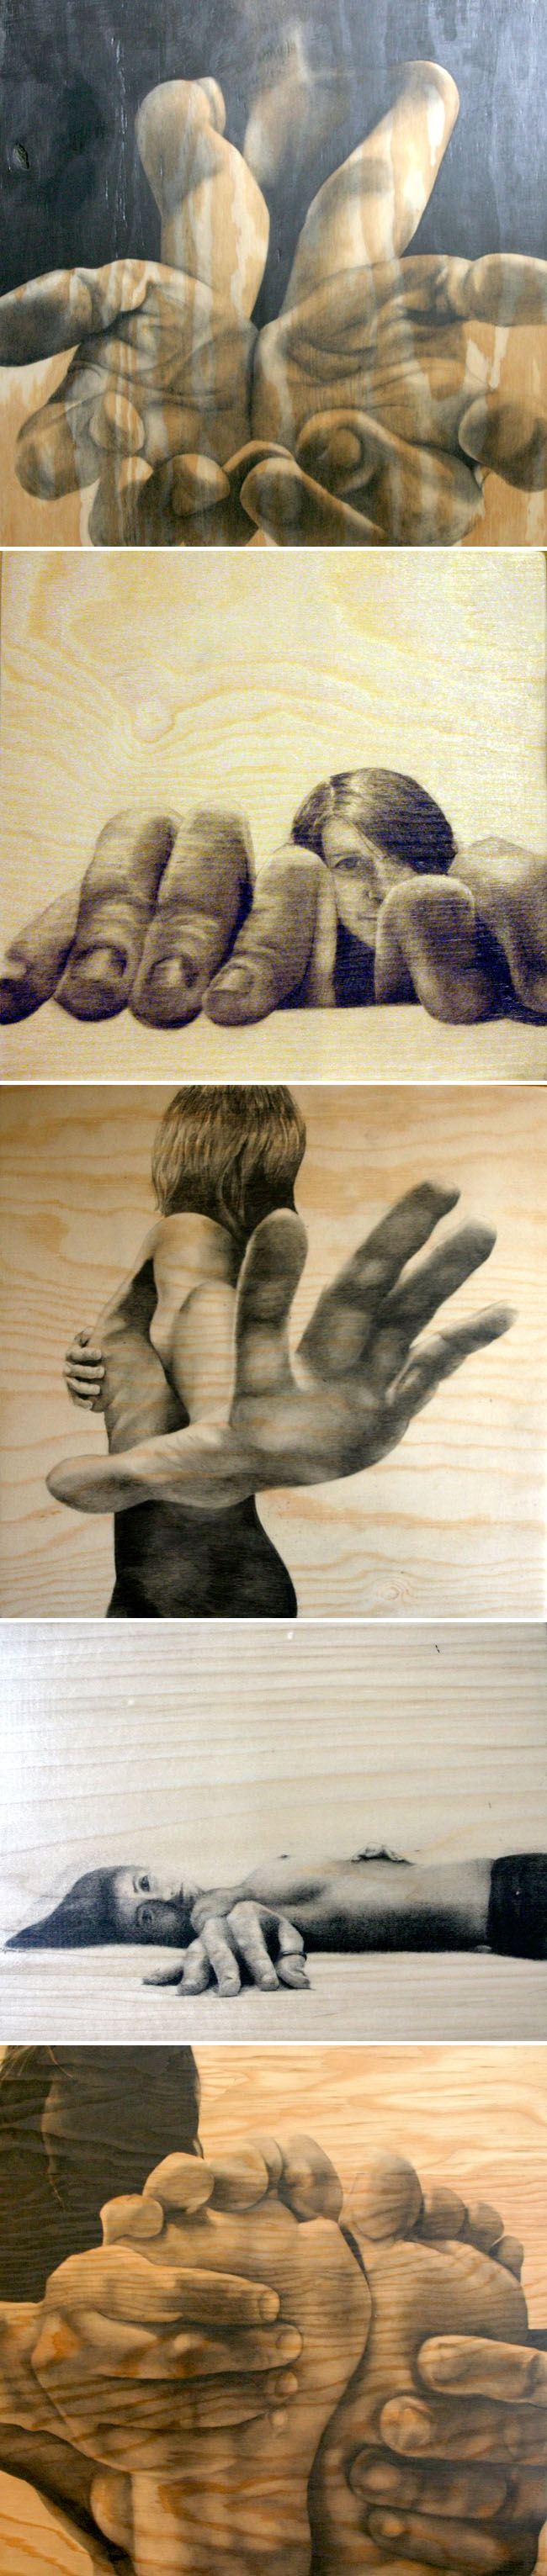 Pencil drawings, wood, nudes, hands, feet, Michelle Ferrera, collabcubed